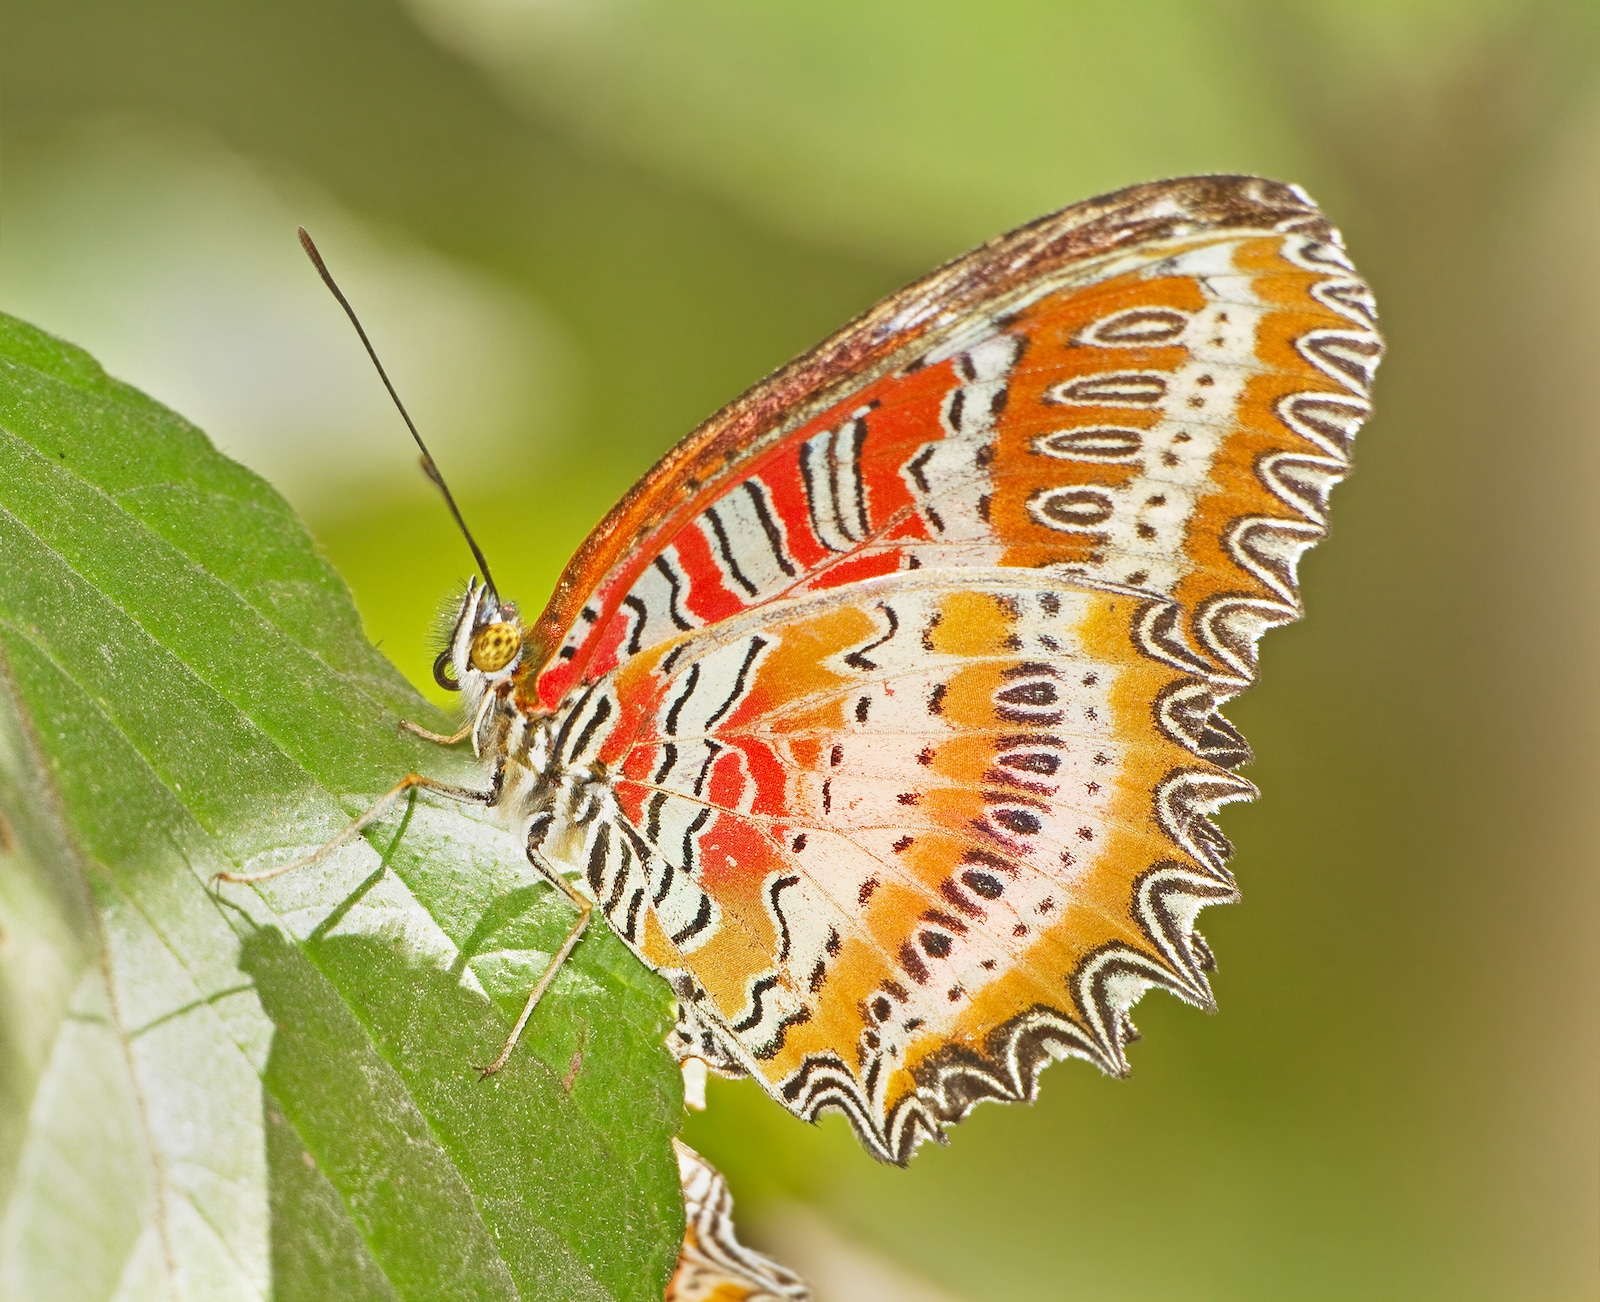 Image of a Red Lacewing Butterfly